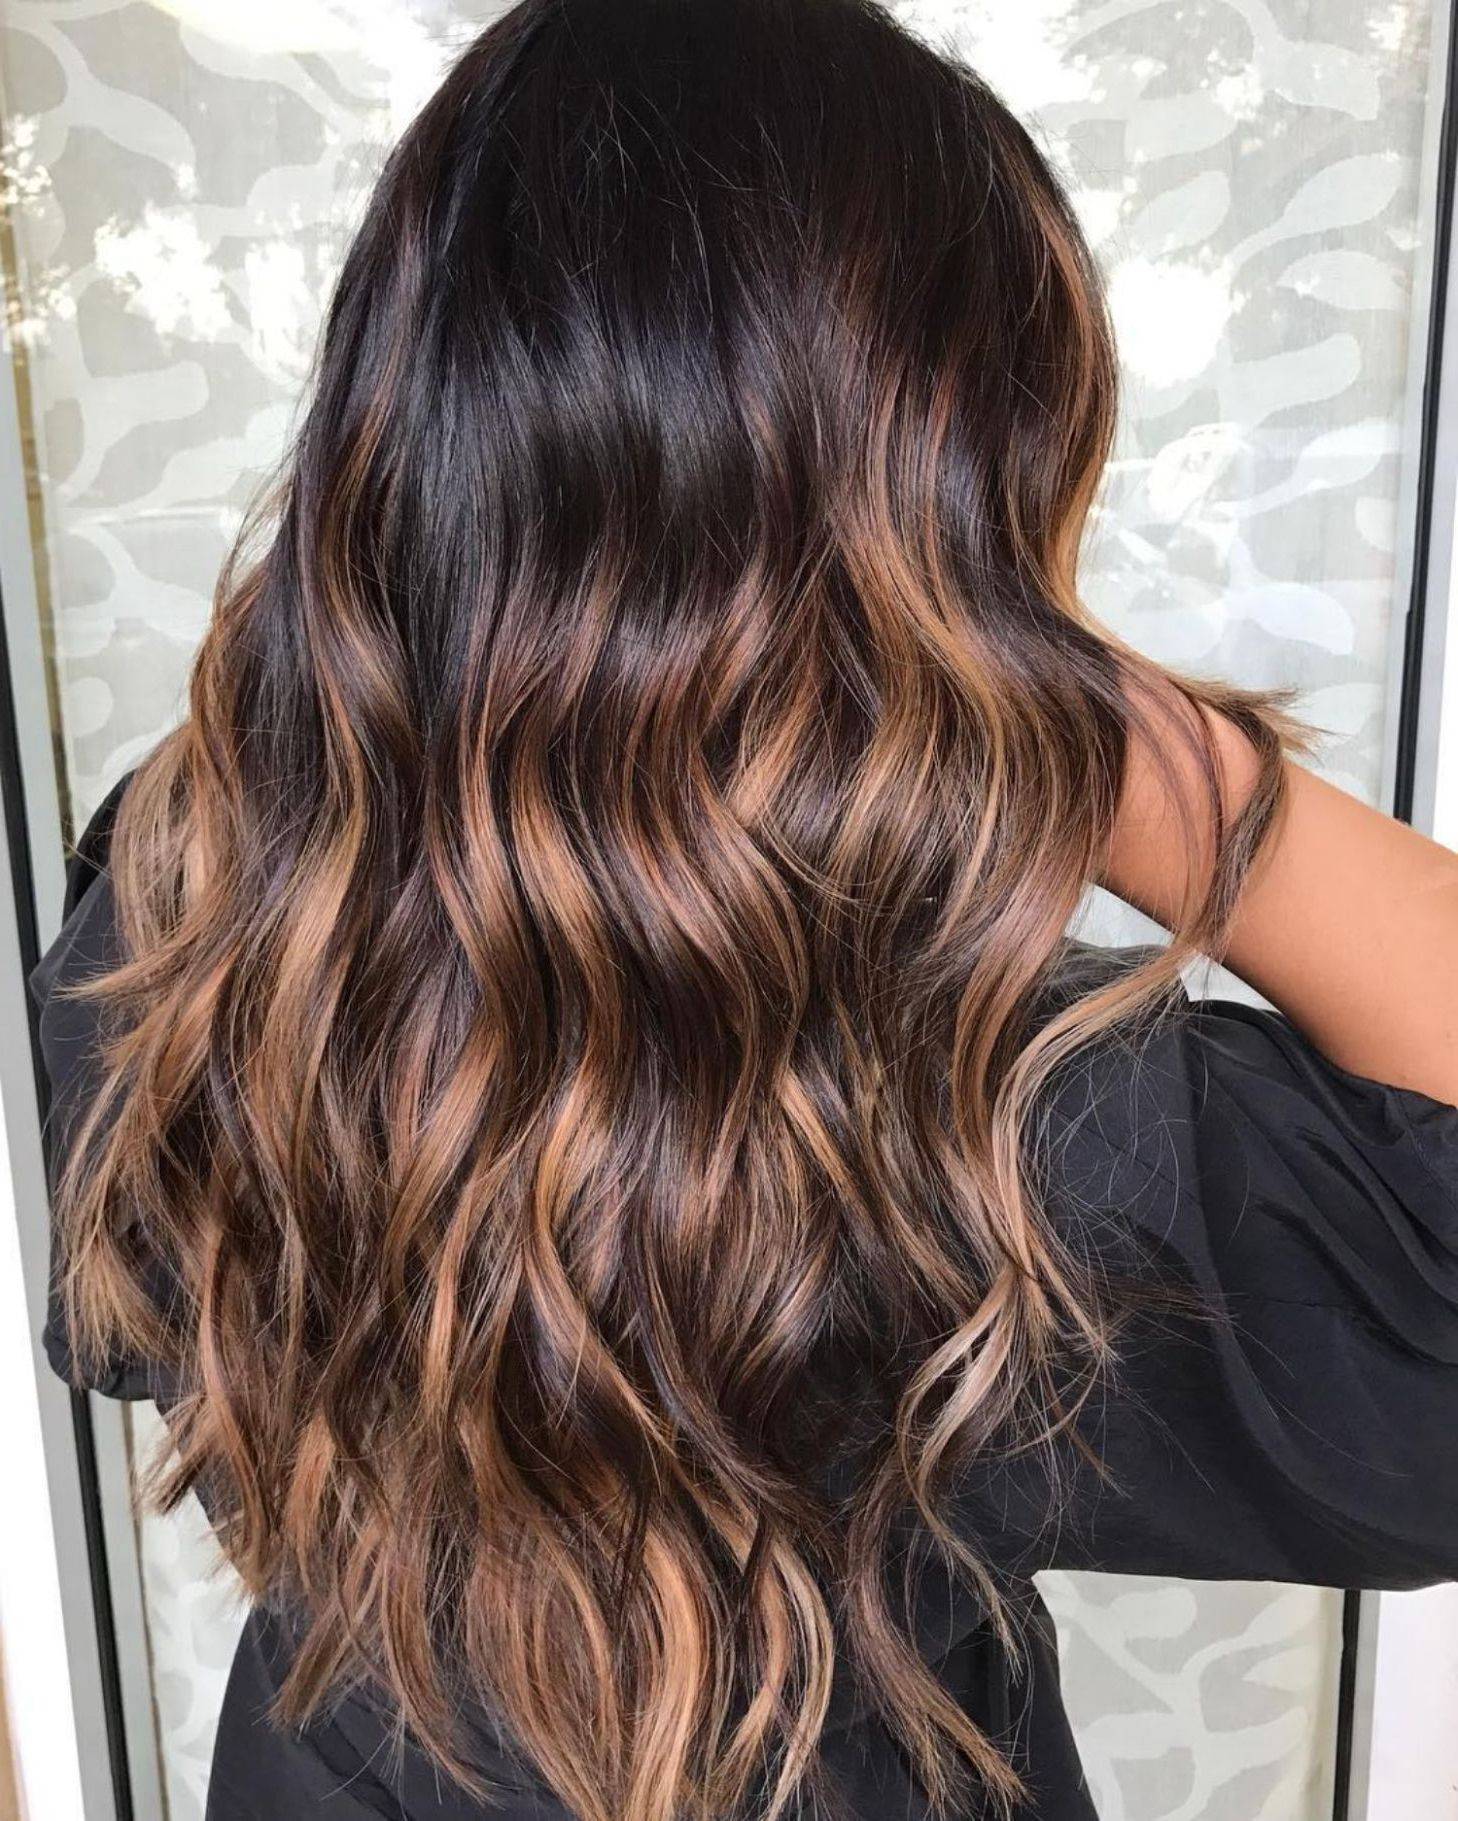 20 Best Hair Colors For 2020 Blonde Hair Color Trends Hair